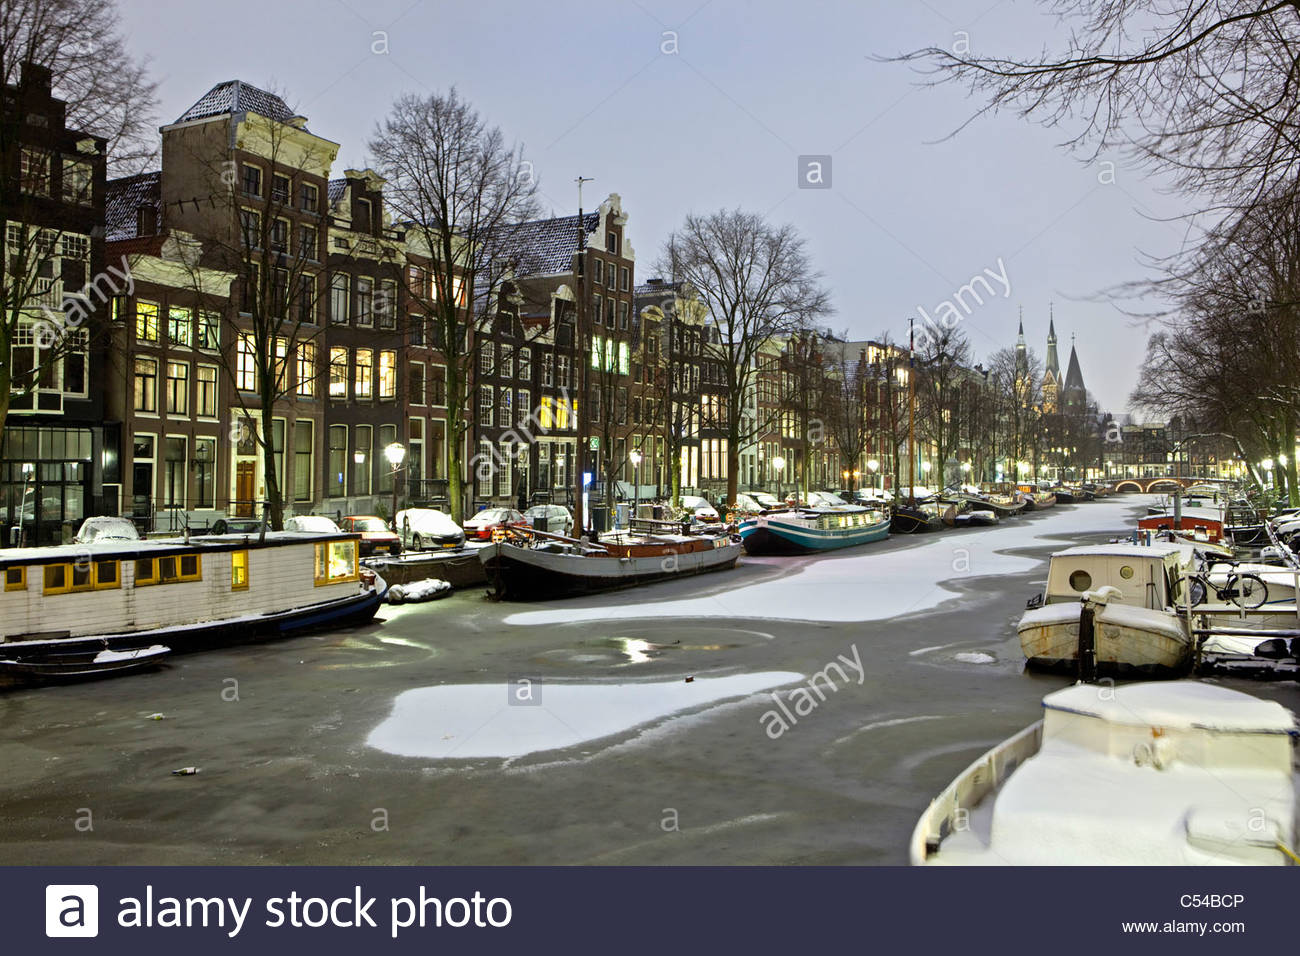 The Netherlands, Amsterdam, 17th century houses at canal called Keizersgracht. Winter, snow, houseboats, dusk. - Stock Image